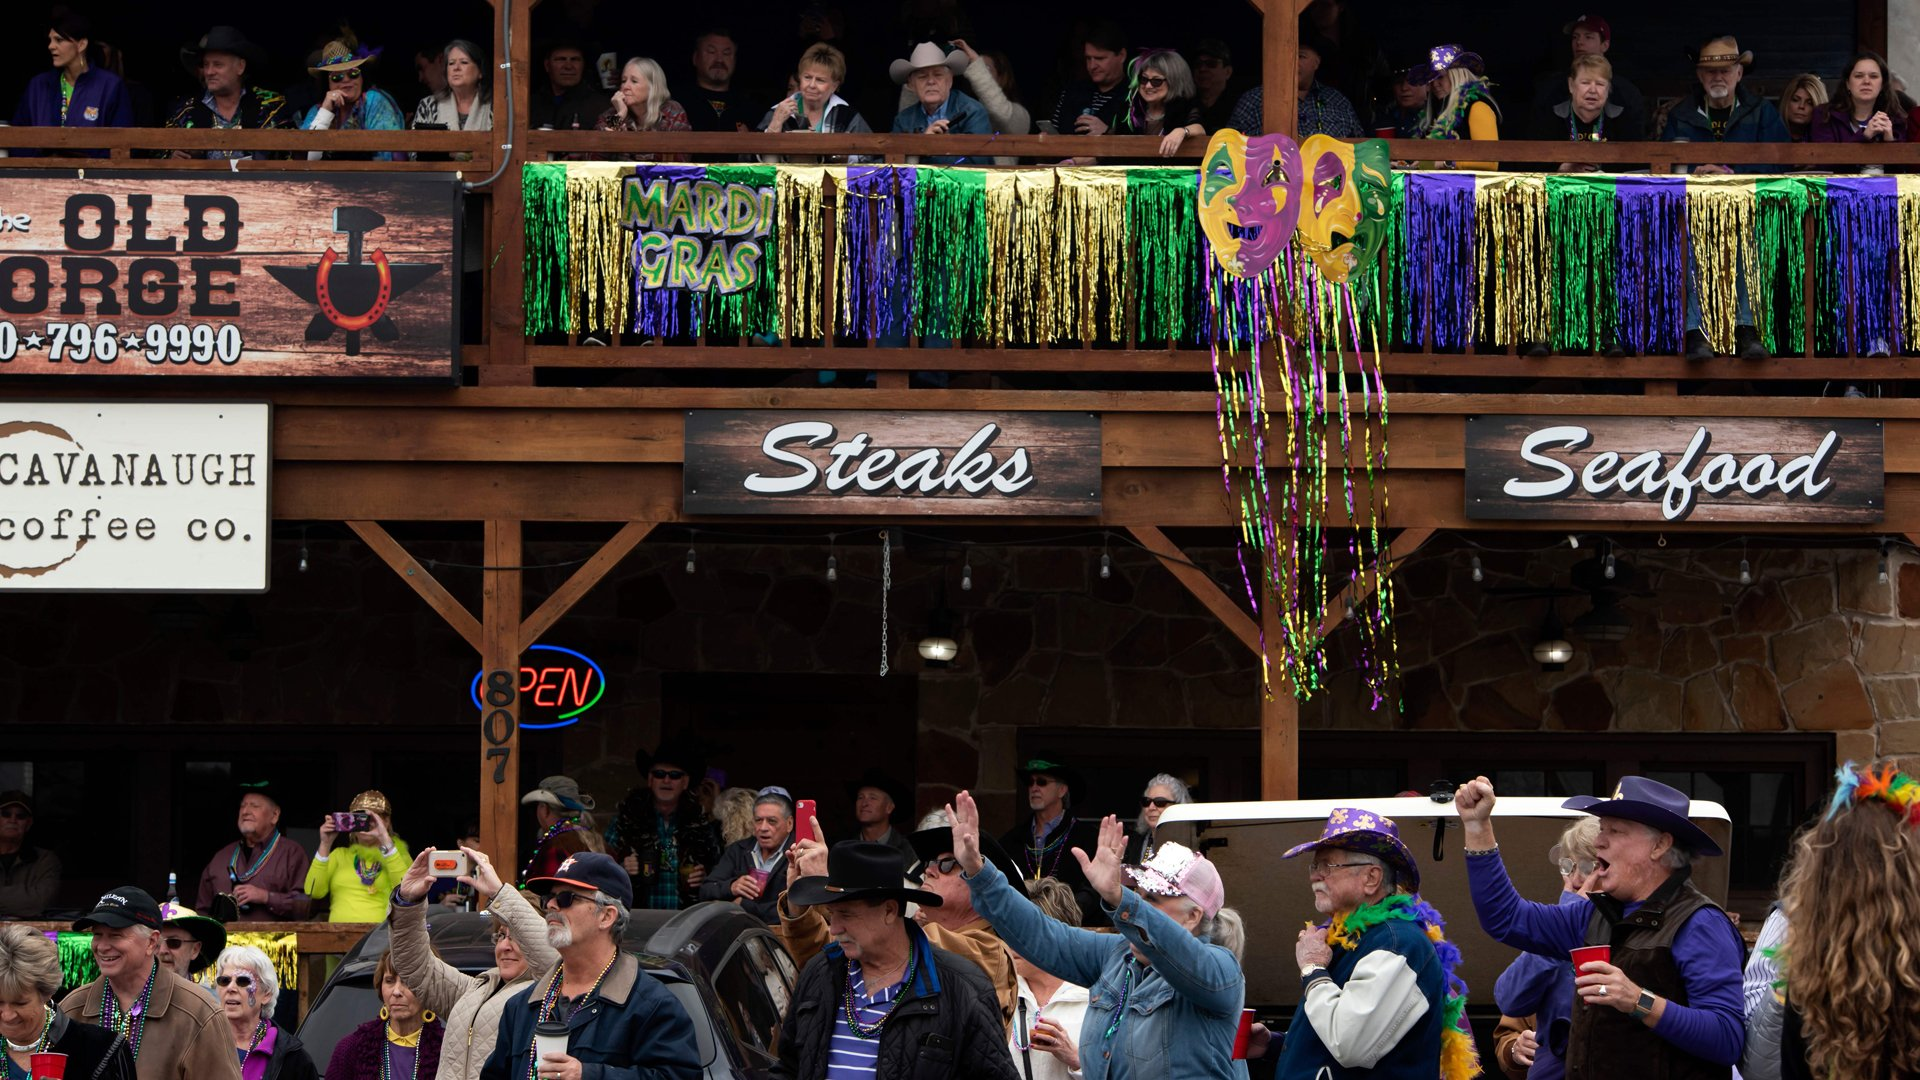 Revelers cheer as parade floats pass during the Cowboy Mardi Gras celebration in Bandera, Texas on February 15, 2020. (Credit: Mark Felix/AFP/Getty Images)